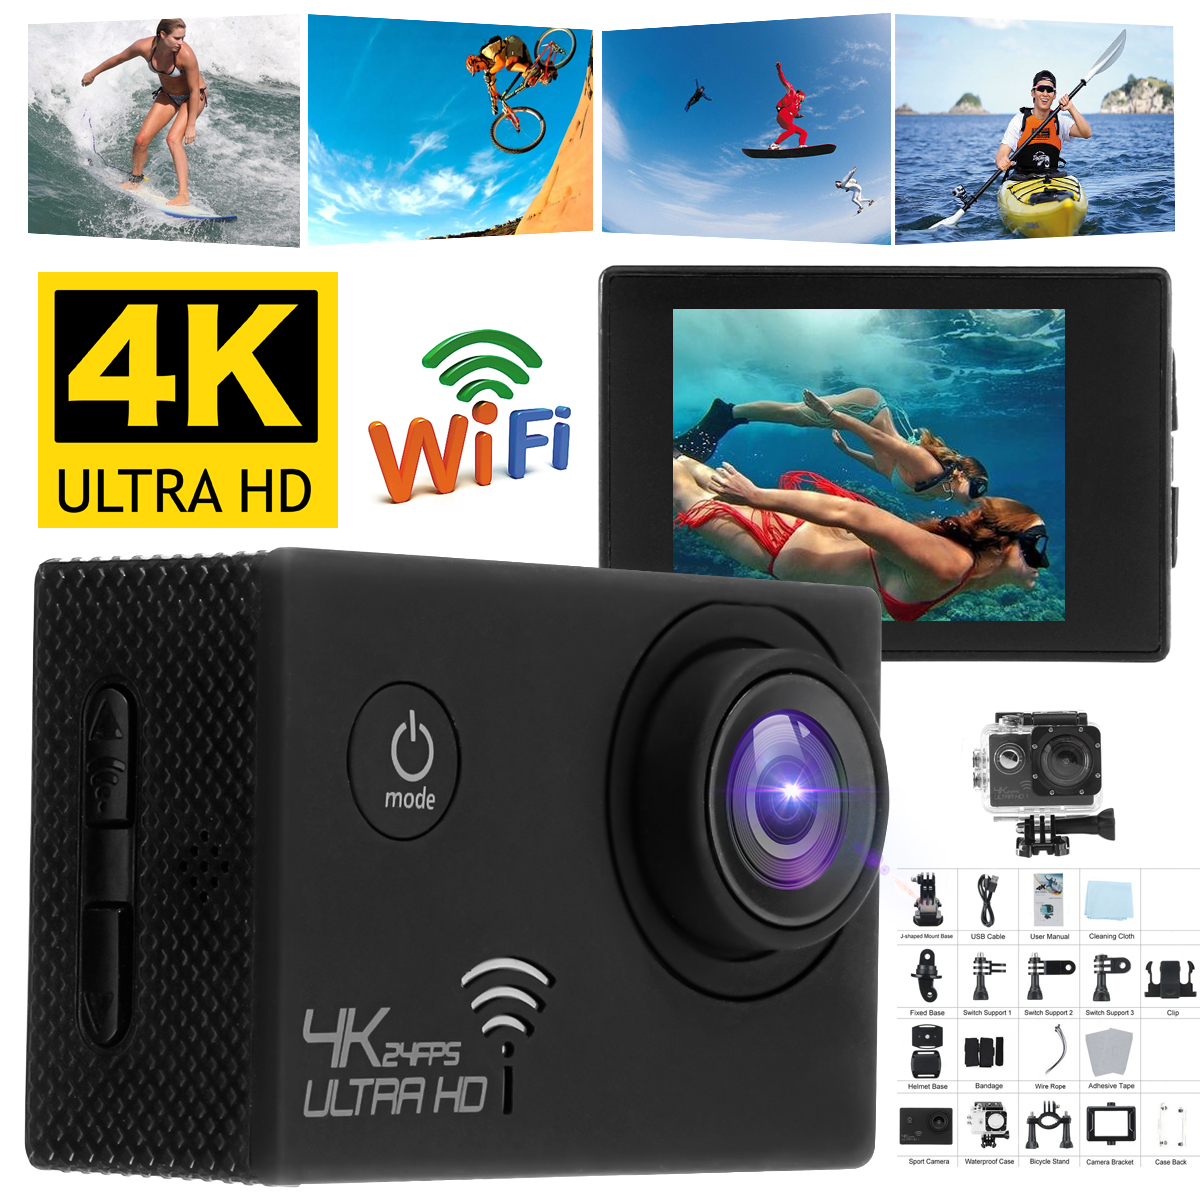 【Pack of 2 Big Clearance】 Winksoar Full HD 4K 16MP 2'' Mini  Wifi Sports Action Camera Waterproof Camcorder 16MP Video Recorder DVR Surfing, Siving, Swimming